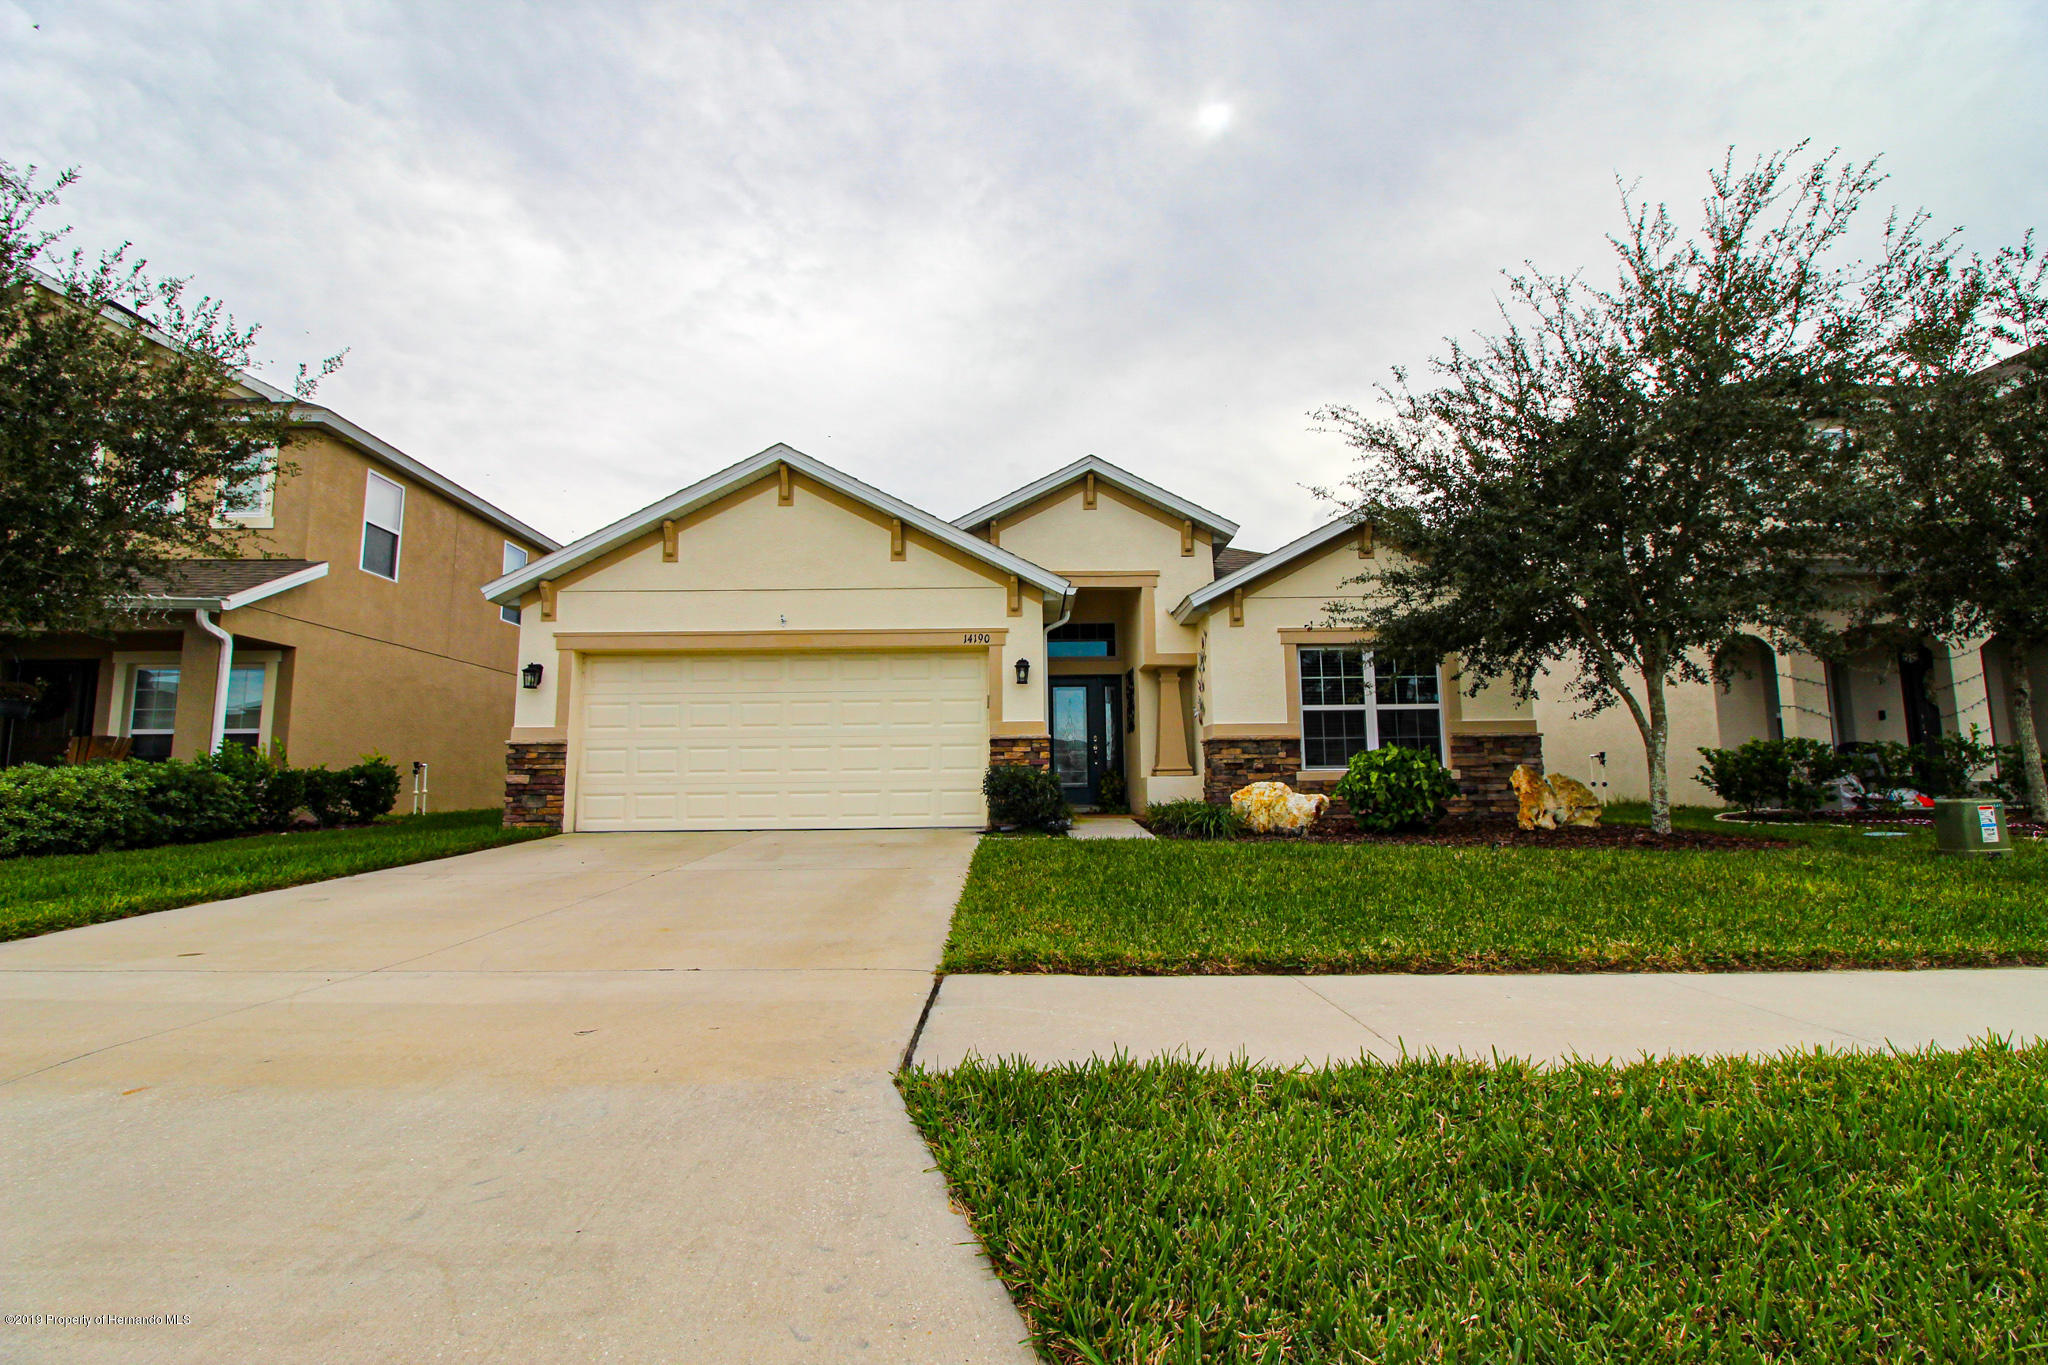 14190 Finsbury Drive, Spring Hill, Florida 34609, 4 Bedrooms Bedrooms, ,2 BathroomsBathrooms,Residential,For Sale,Finsbury,2206088